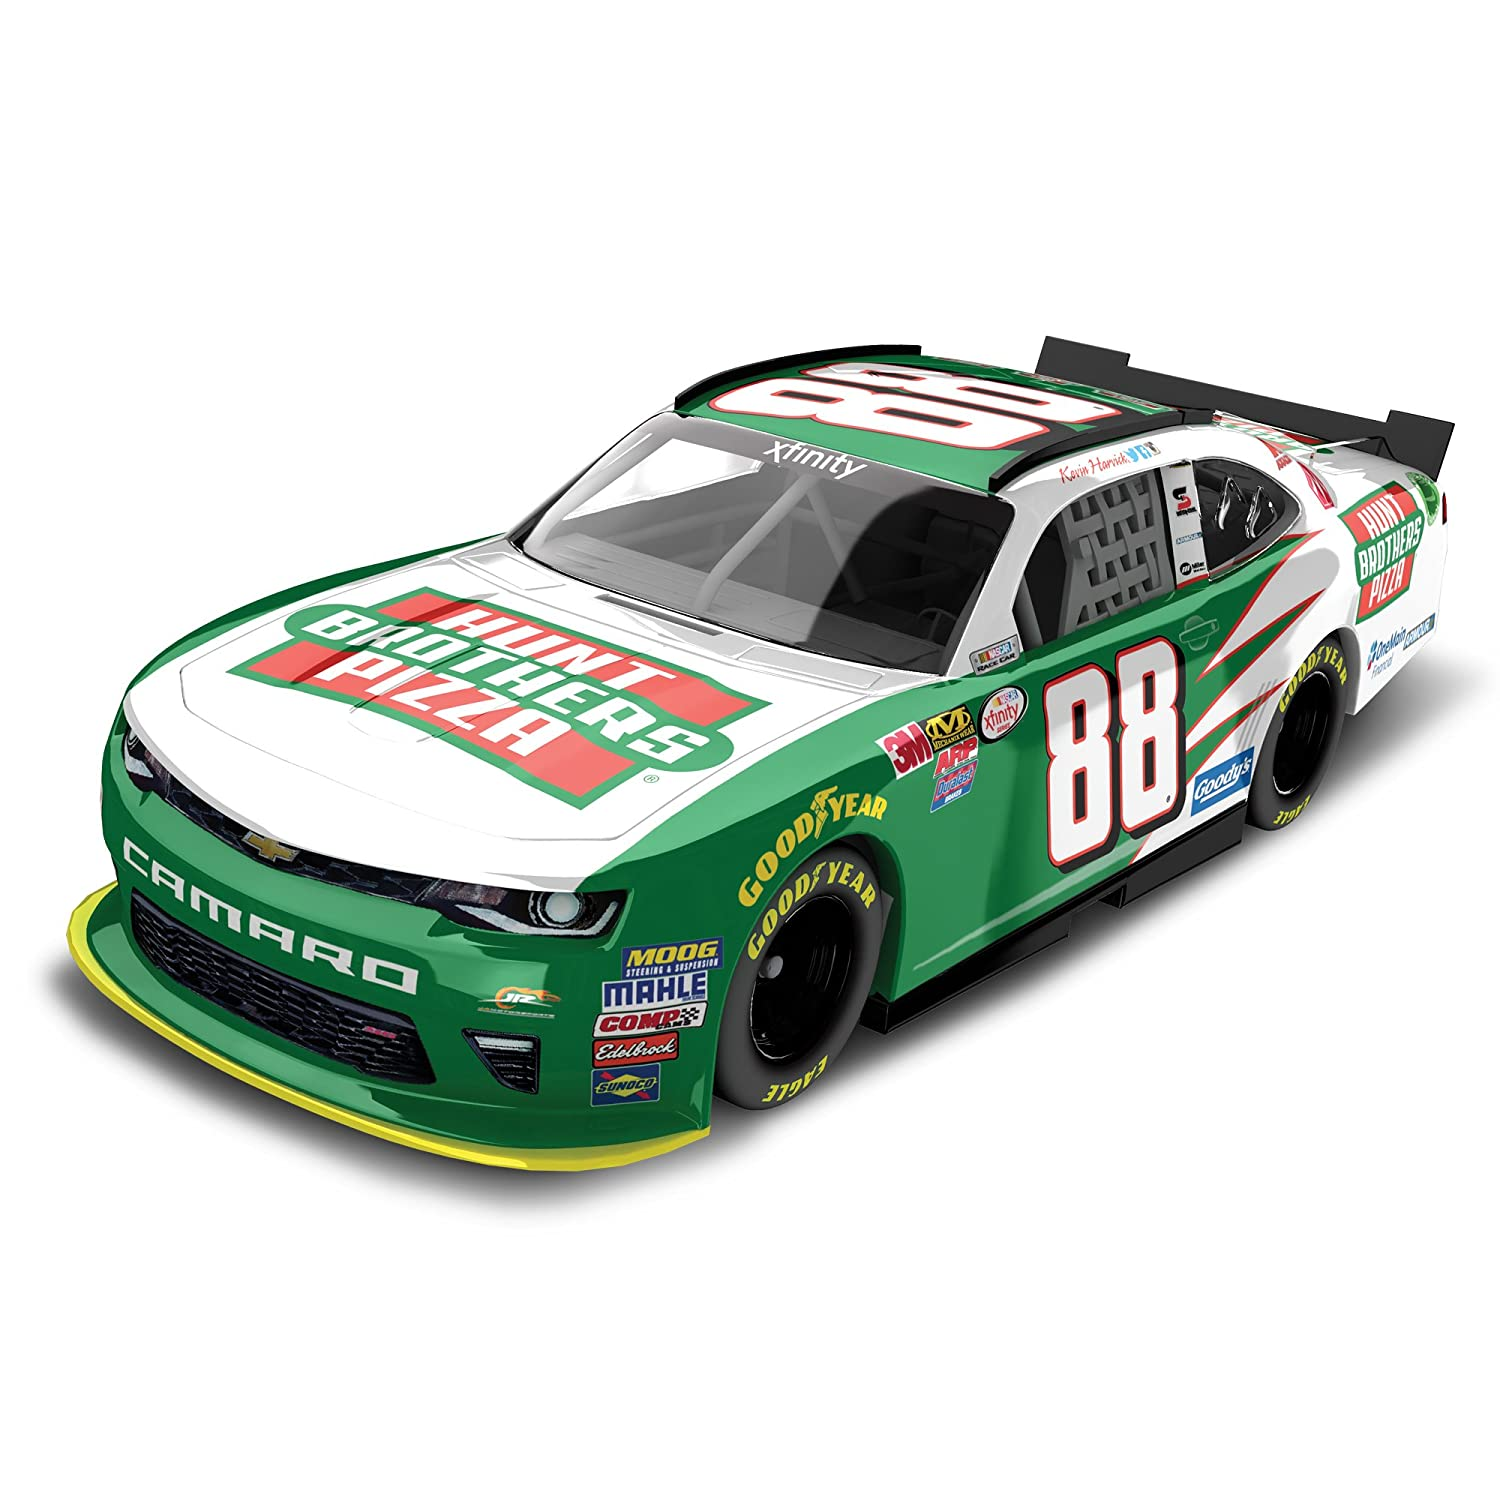 Lionel Racing Kevin Harvick 88 Hunts Brother S Pizza